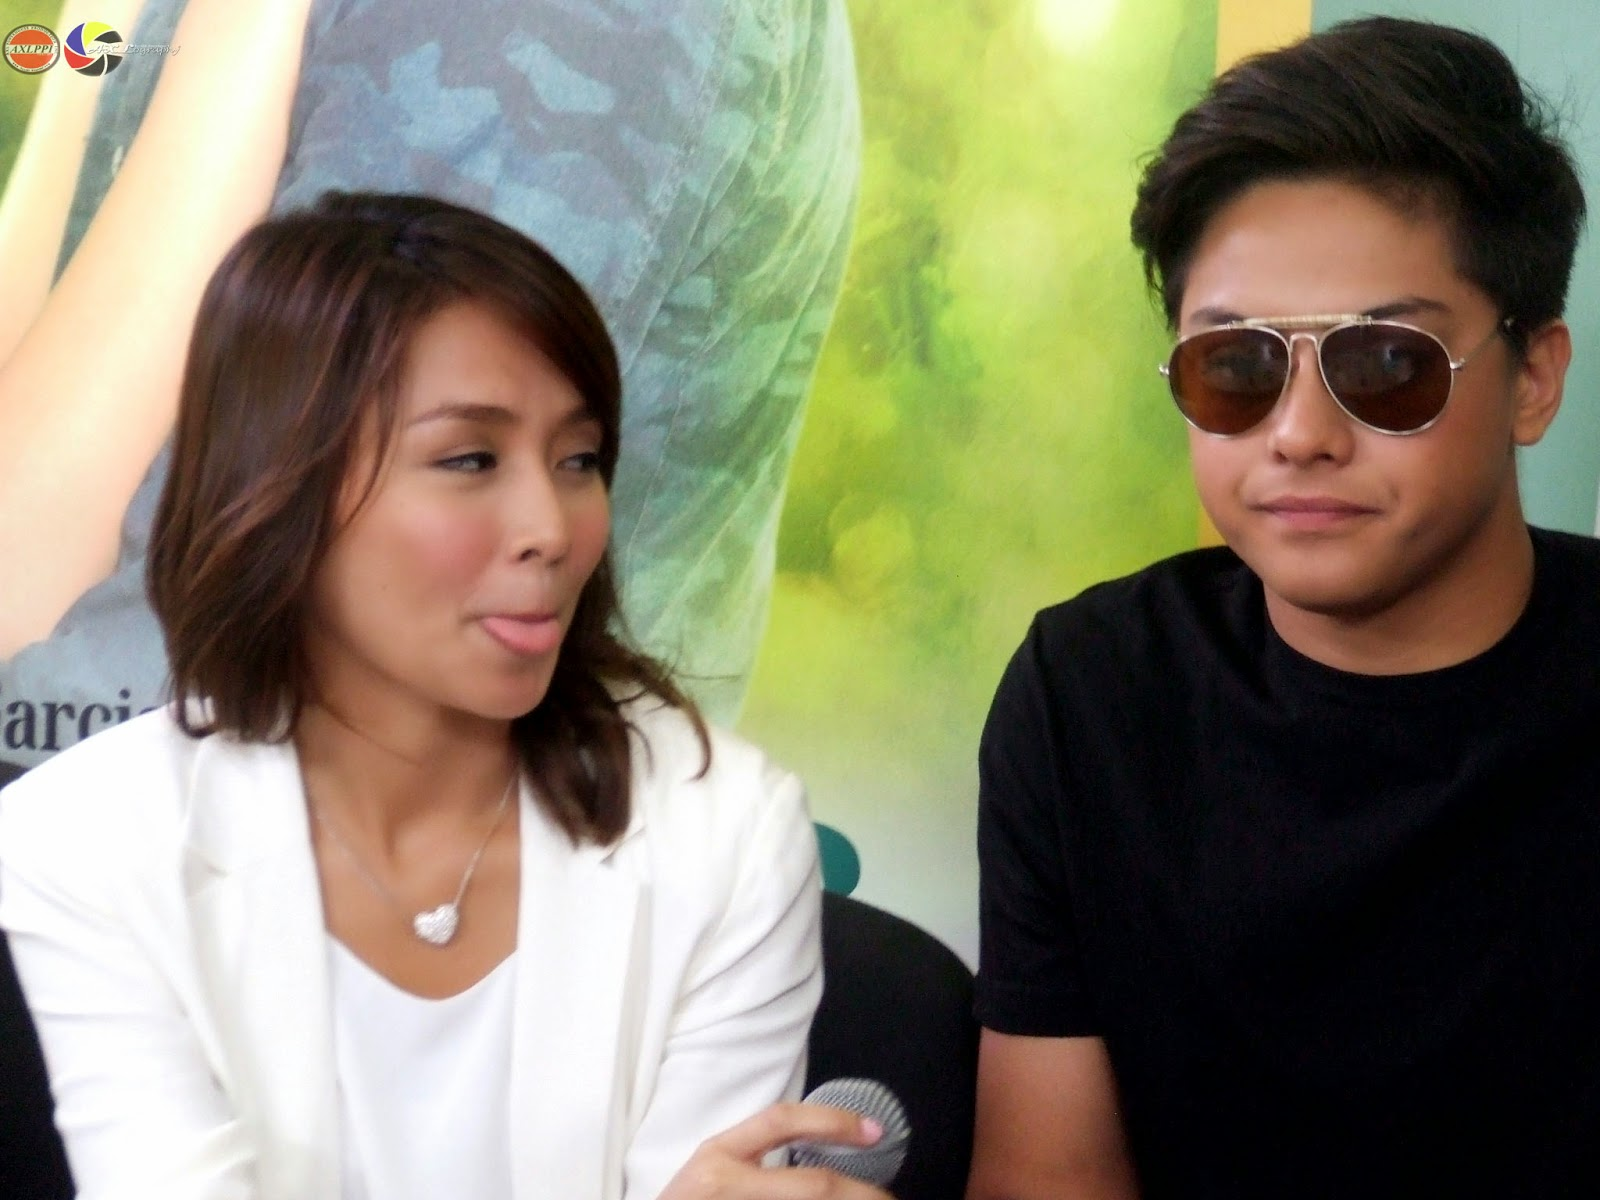 Shes dating the gangster buy online